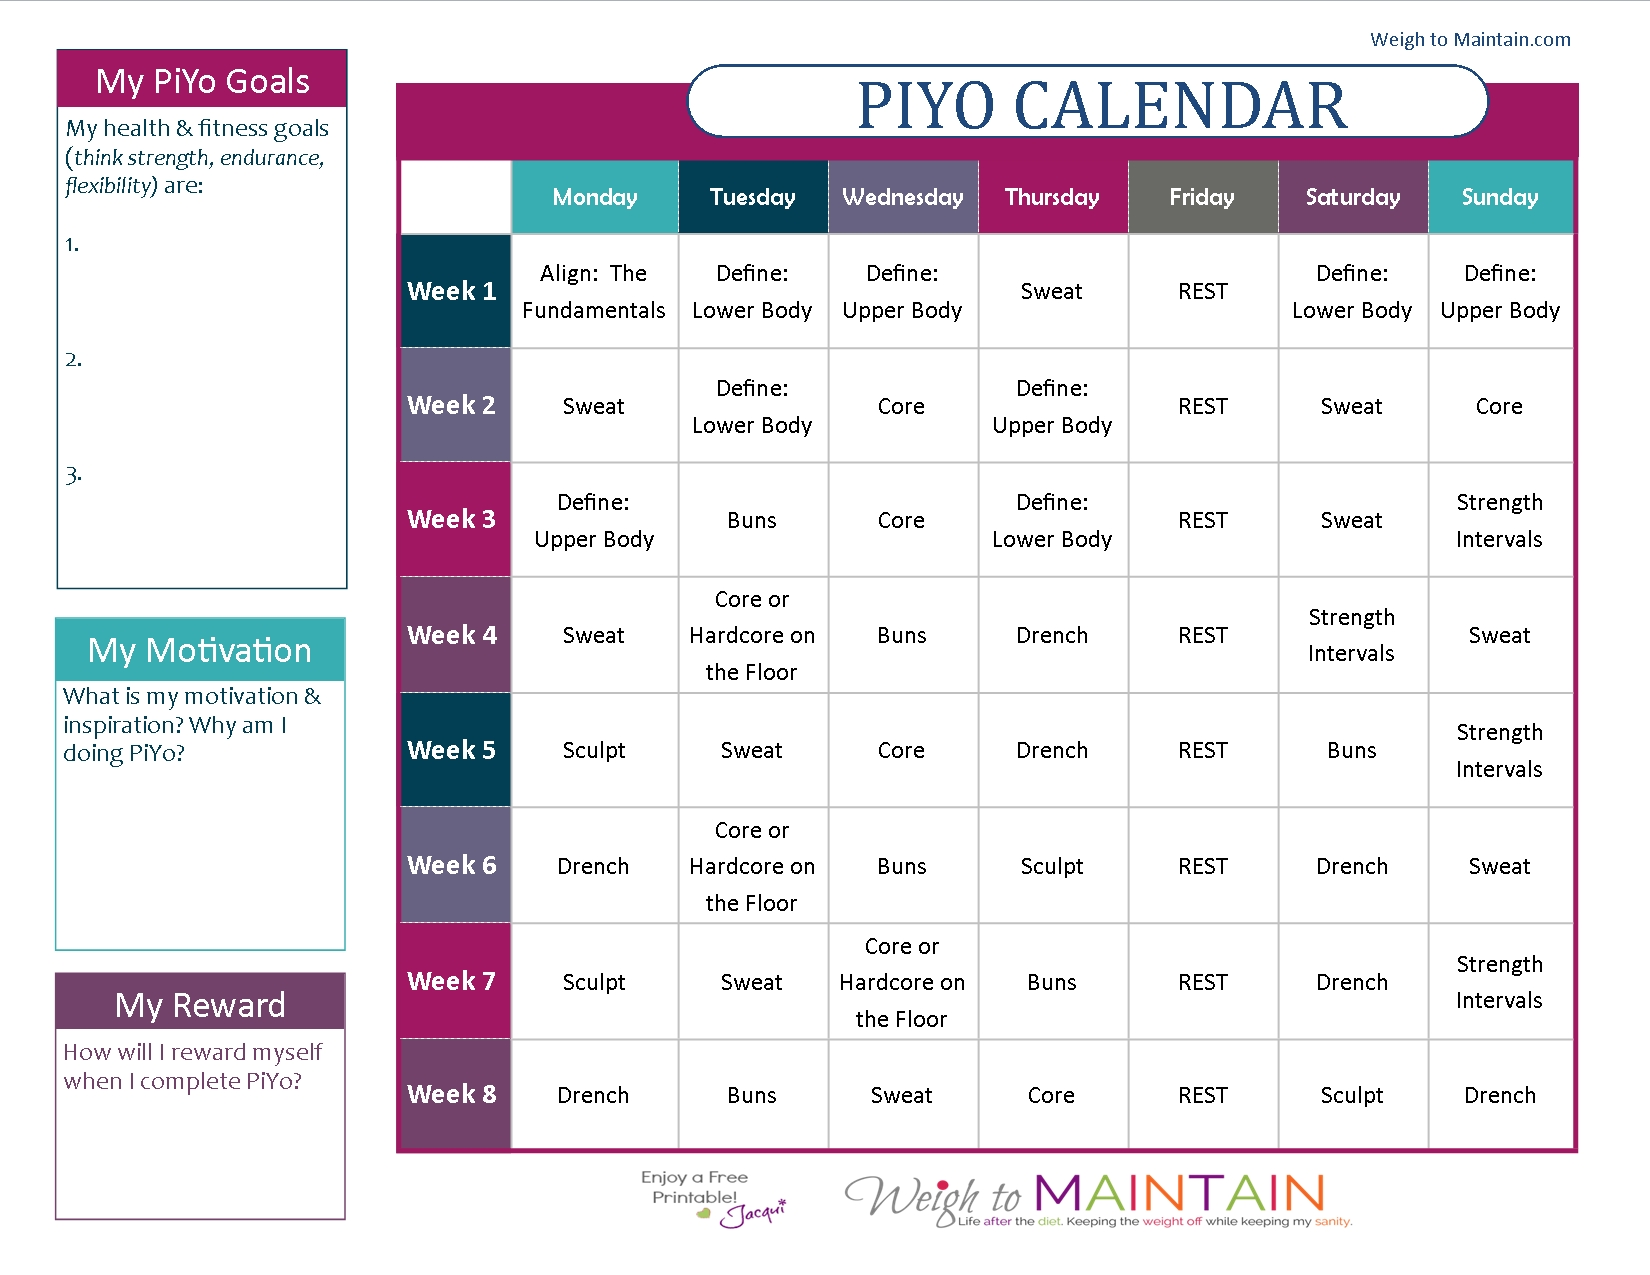 Printable Piyo Calendar And Workout Schedule - Weigh To Maintain